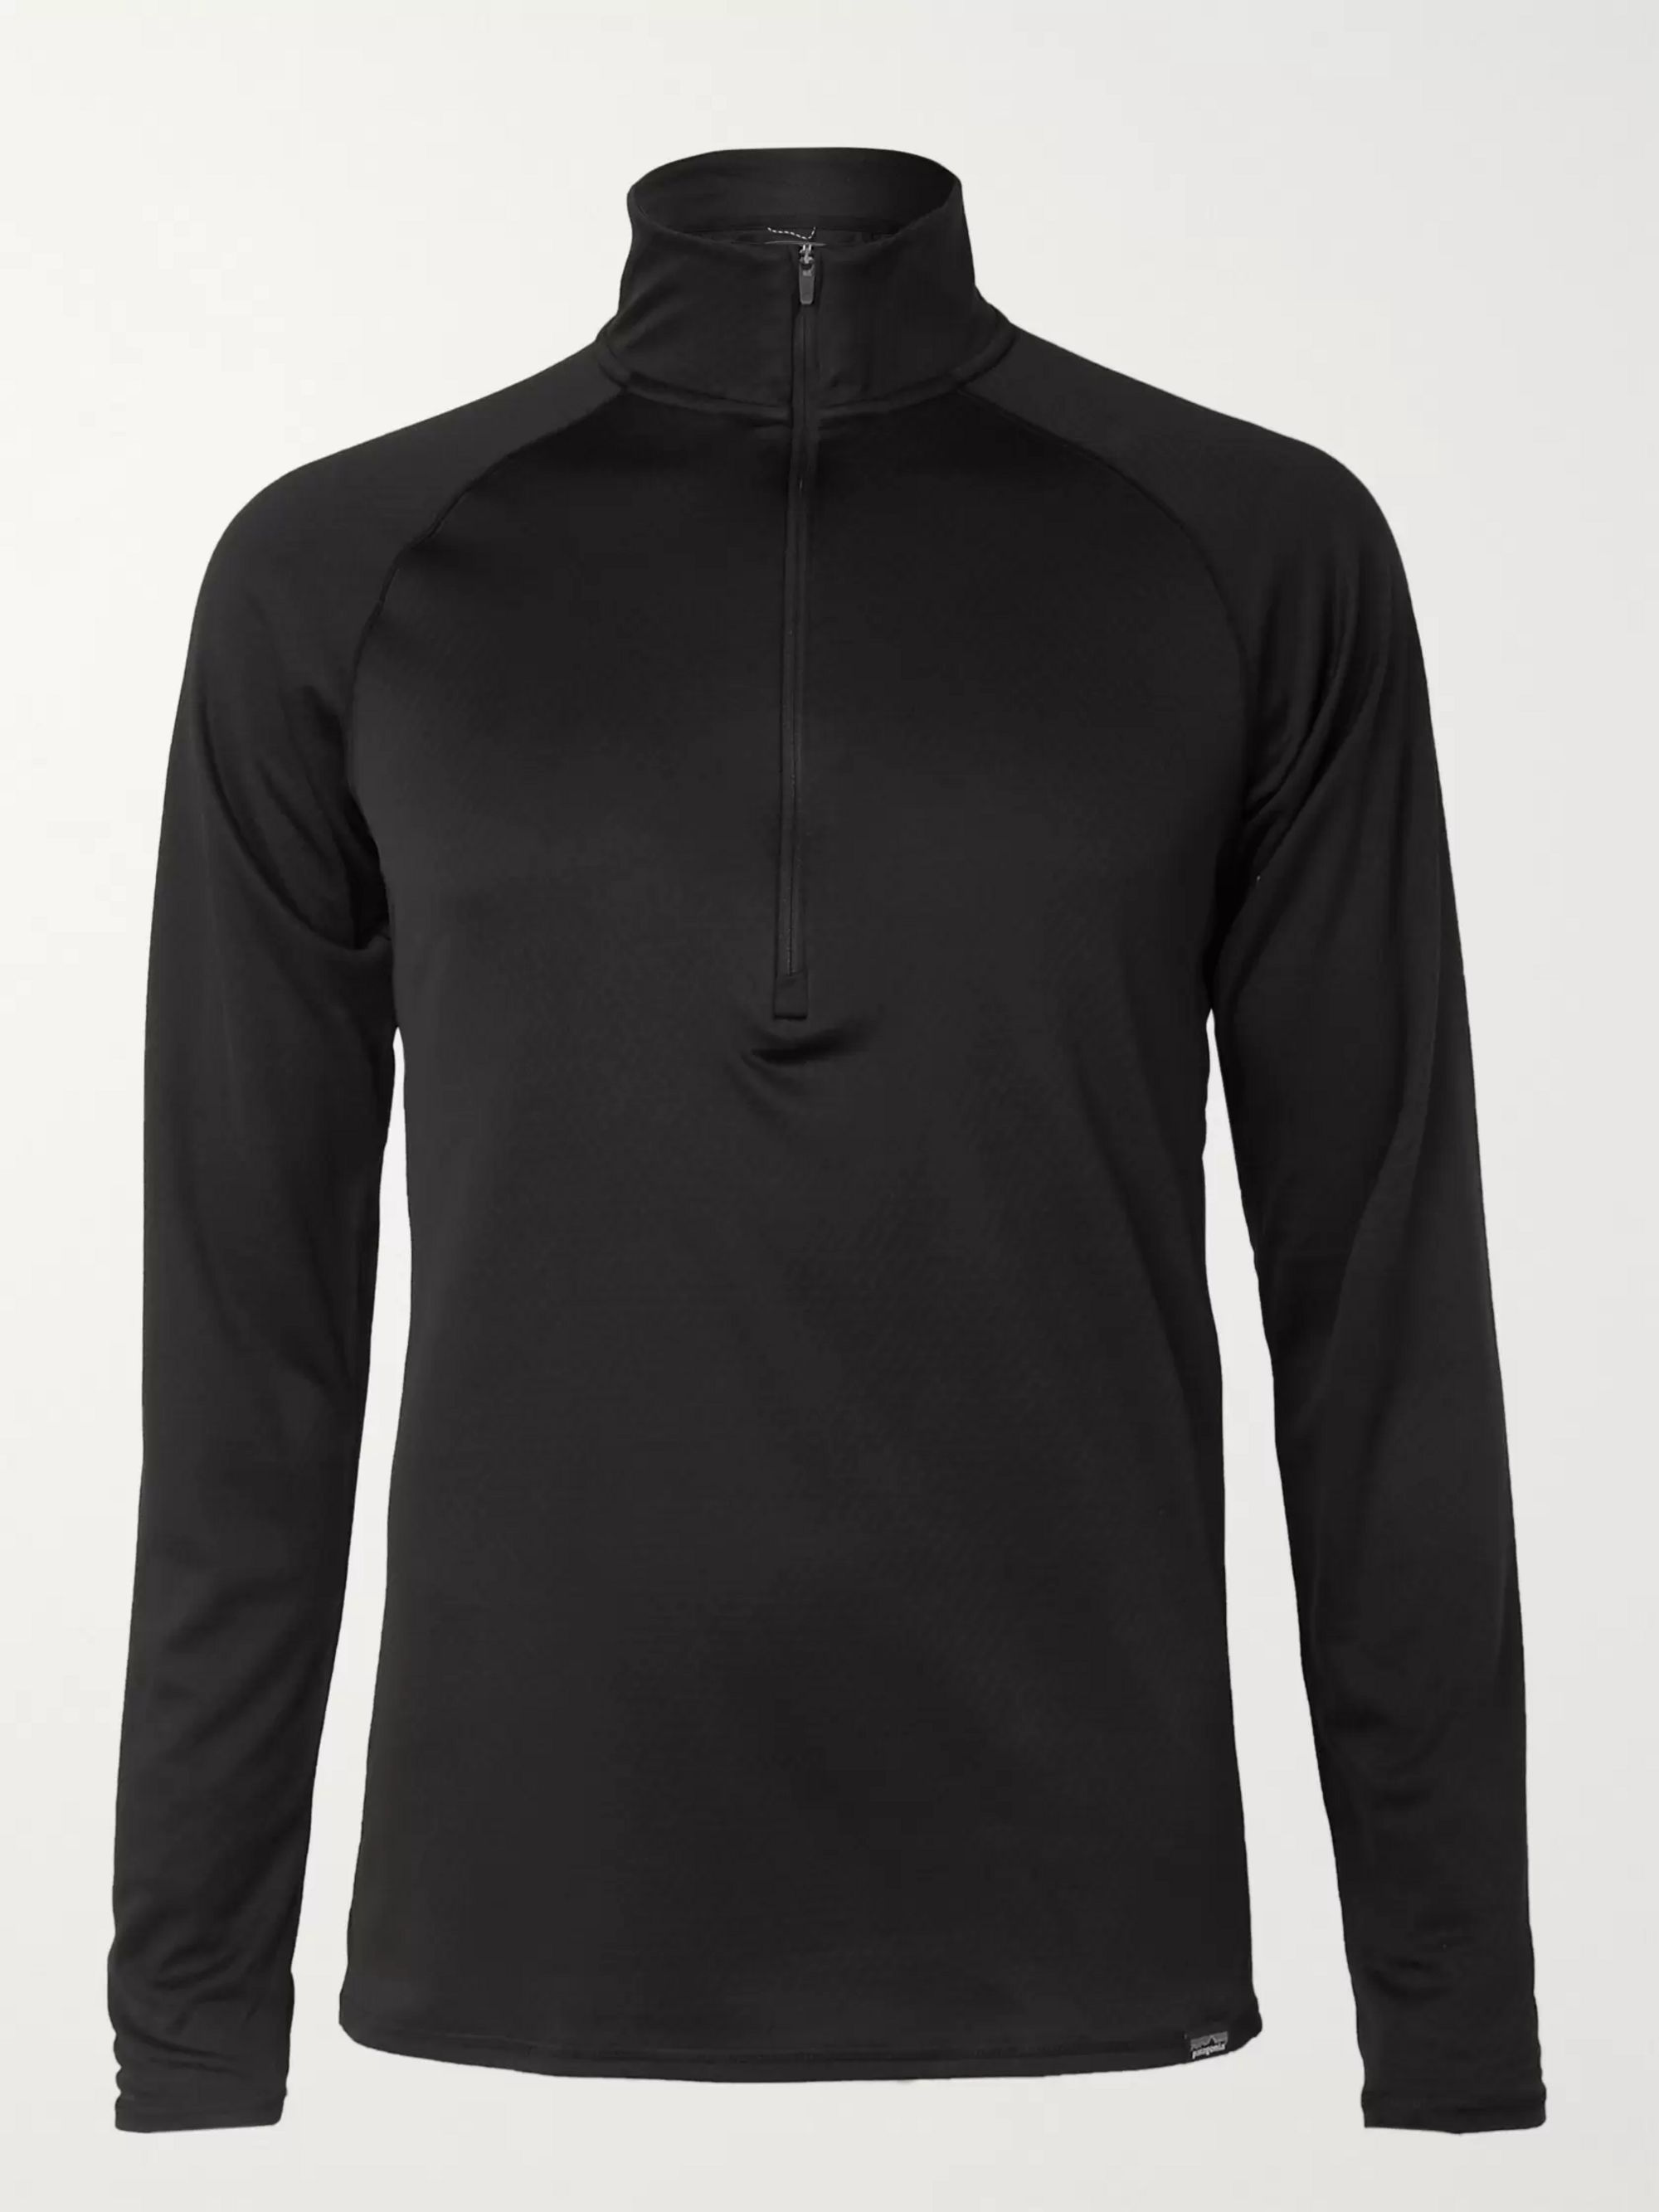 Patagonia Capilene Jersey Half-Zip Base Layer